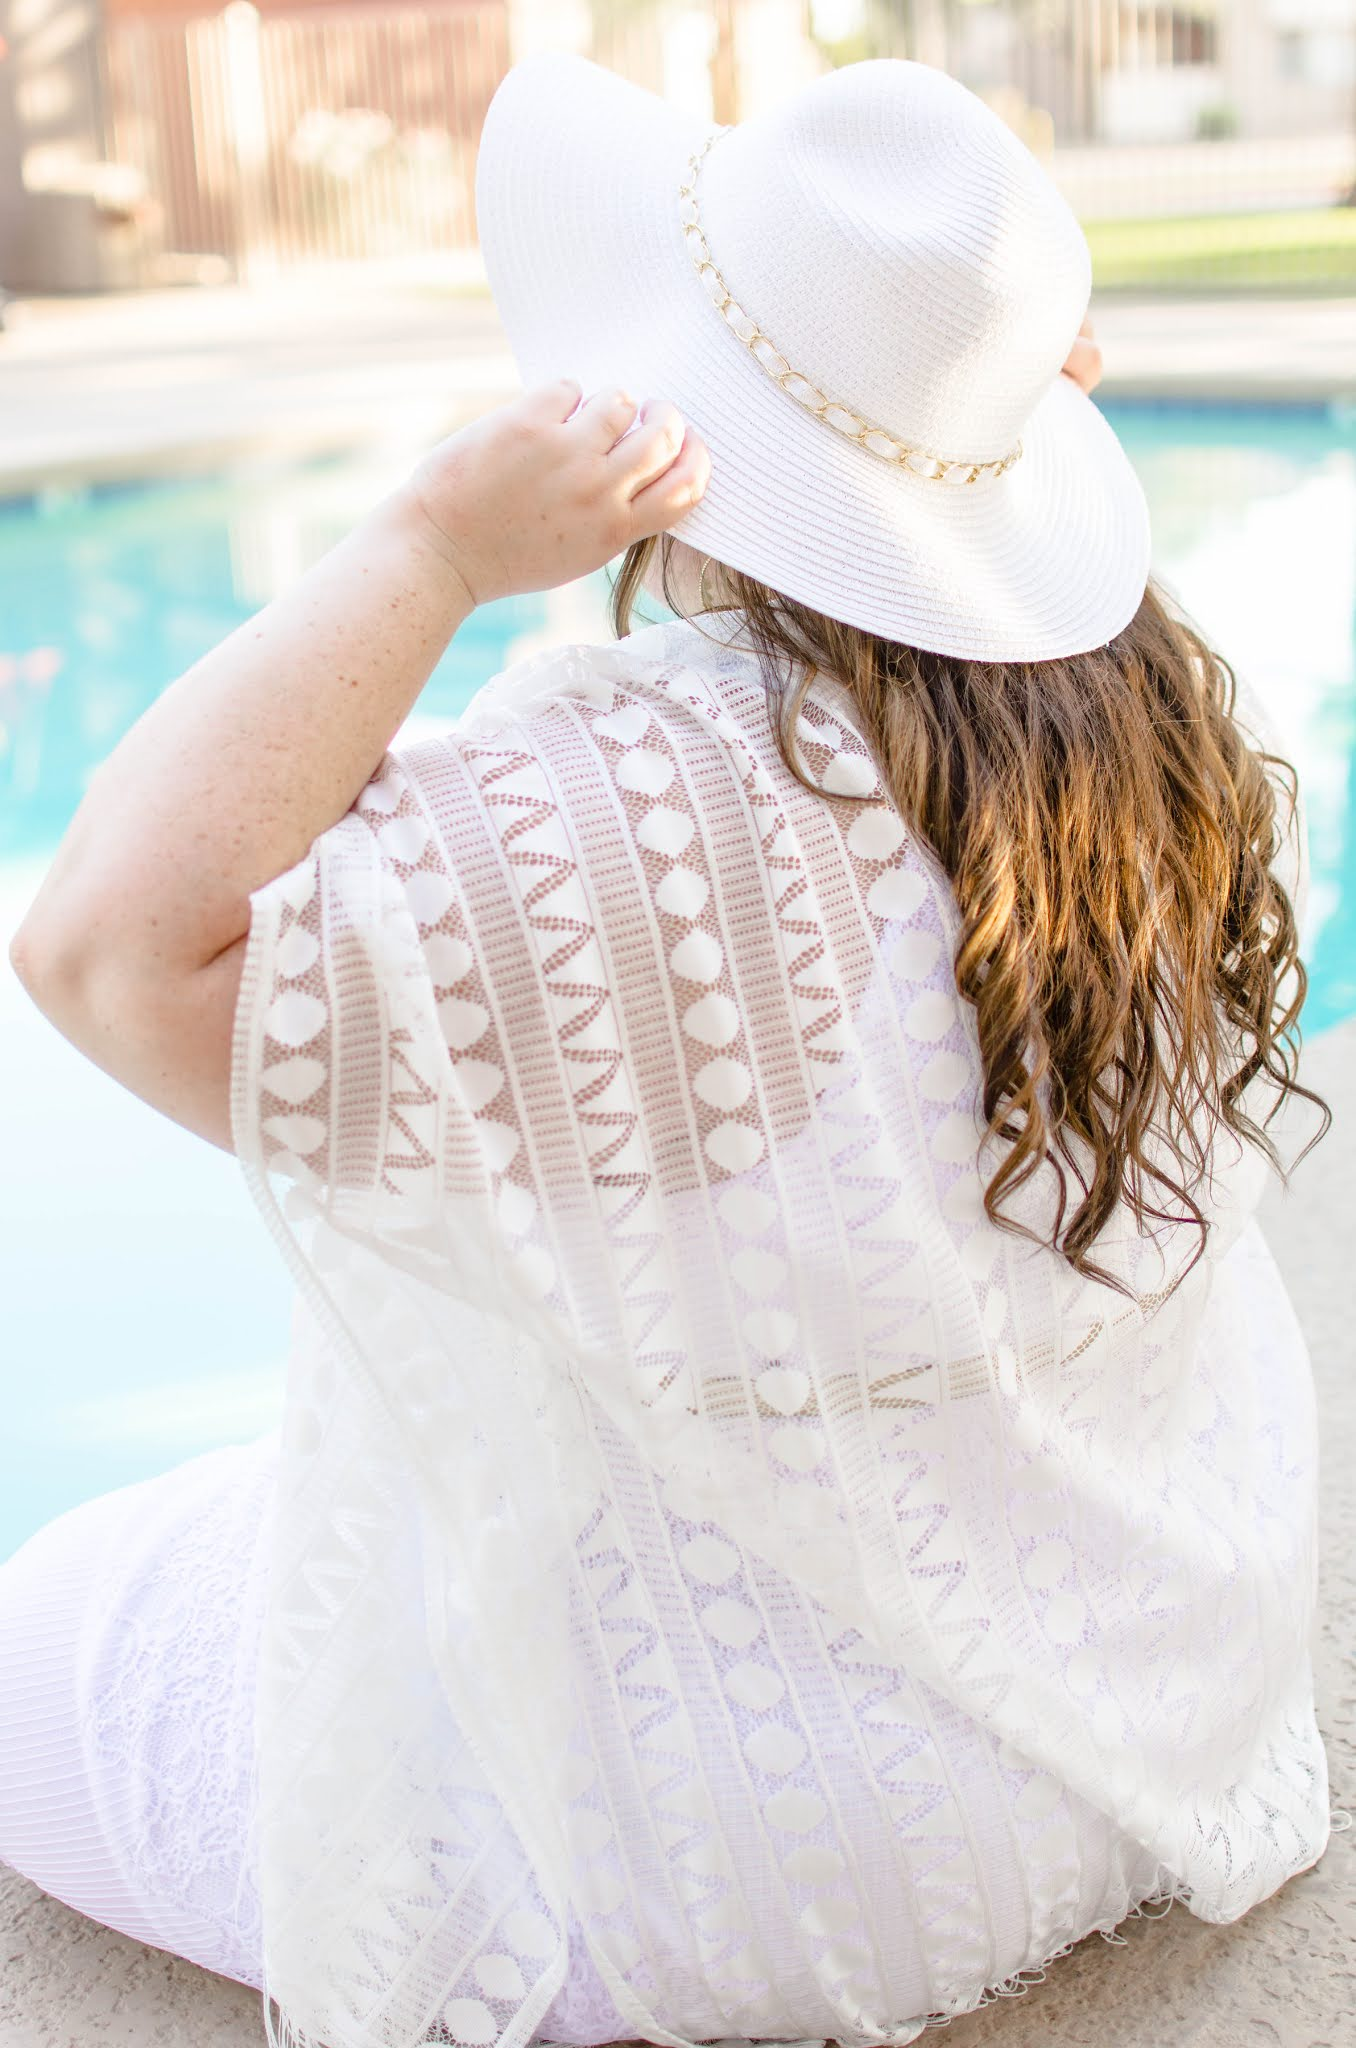 plus size woman in all white beach sunwear and sunht